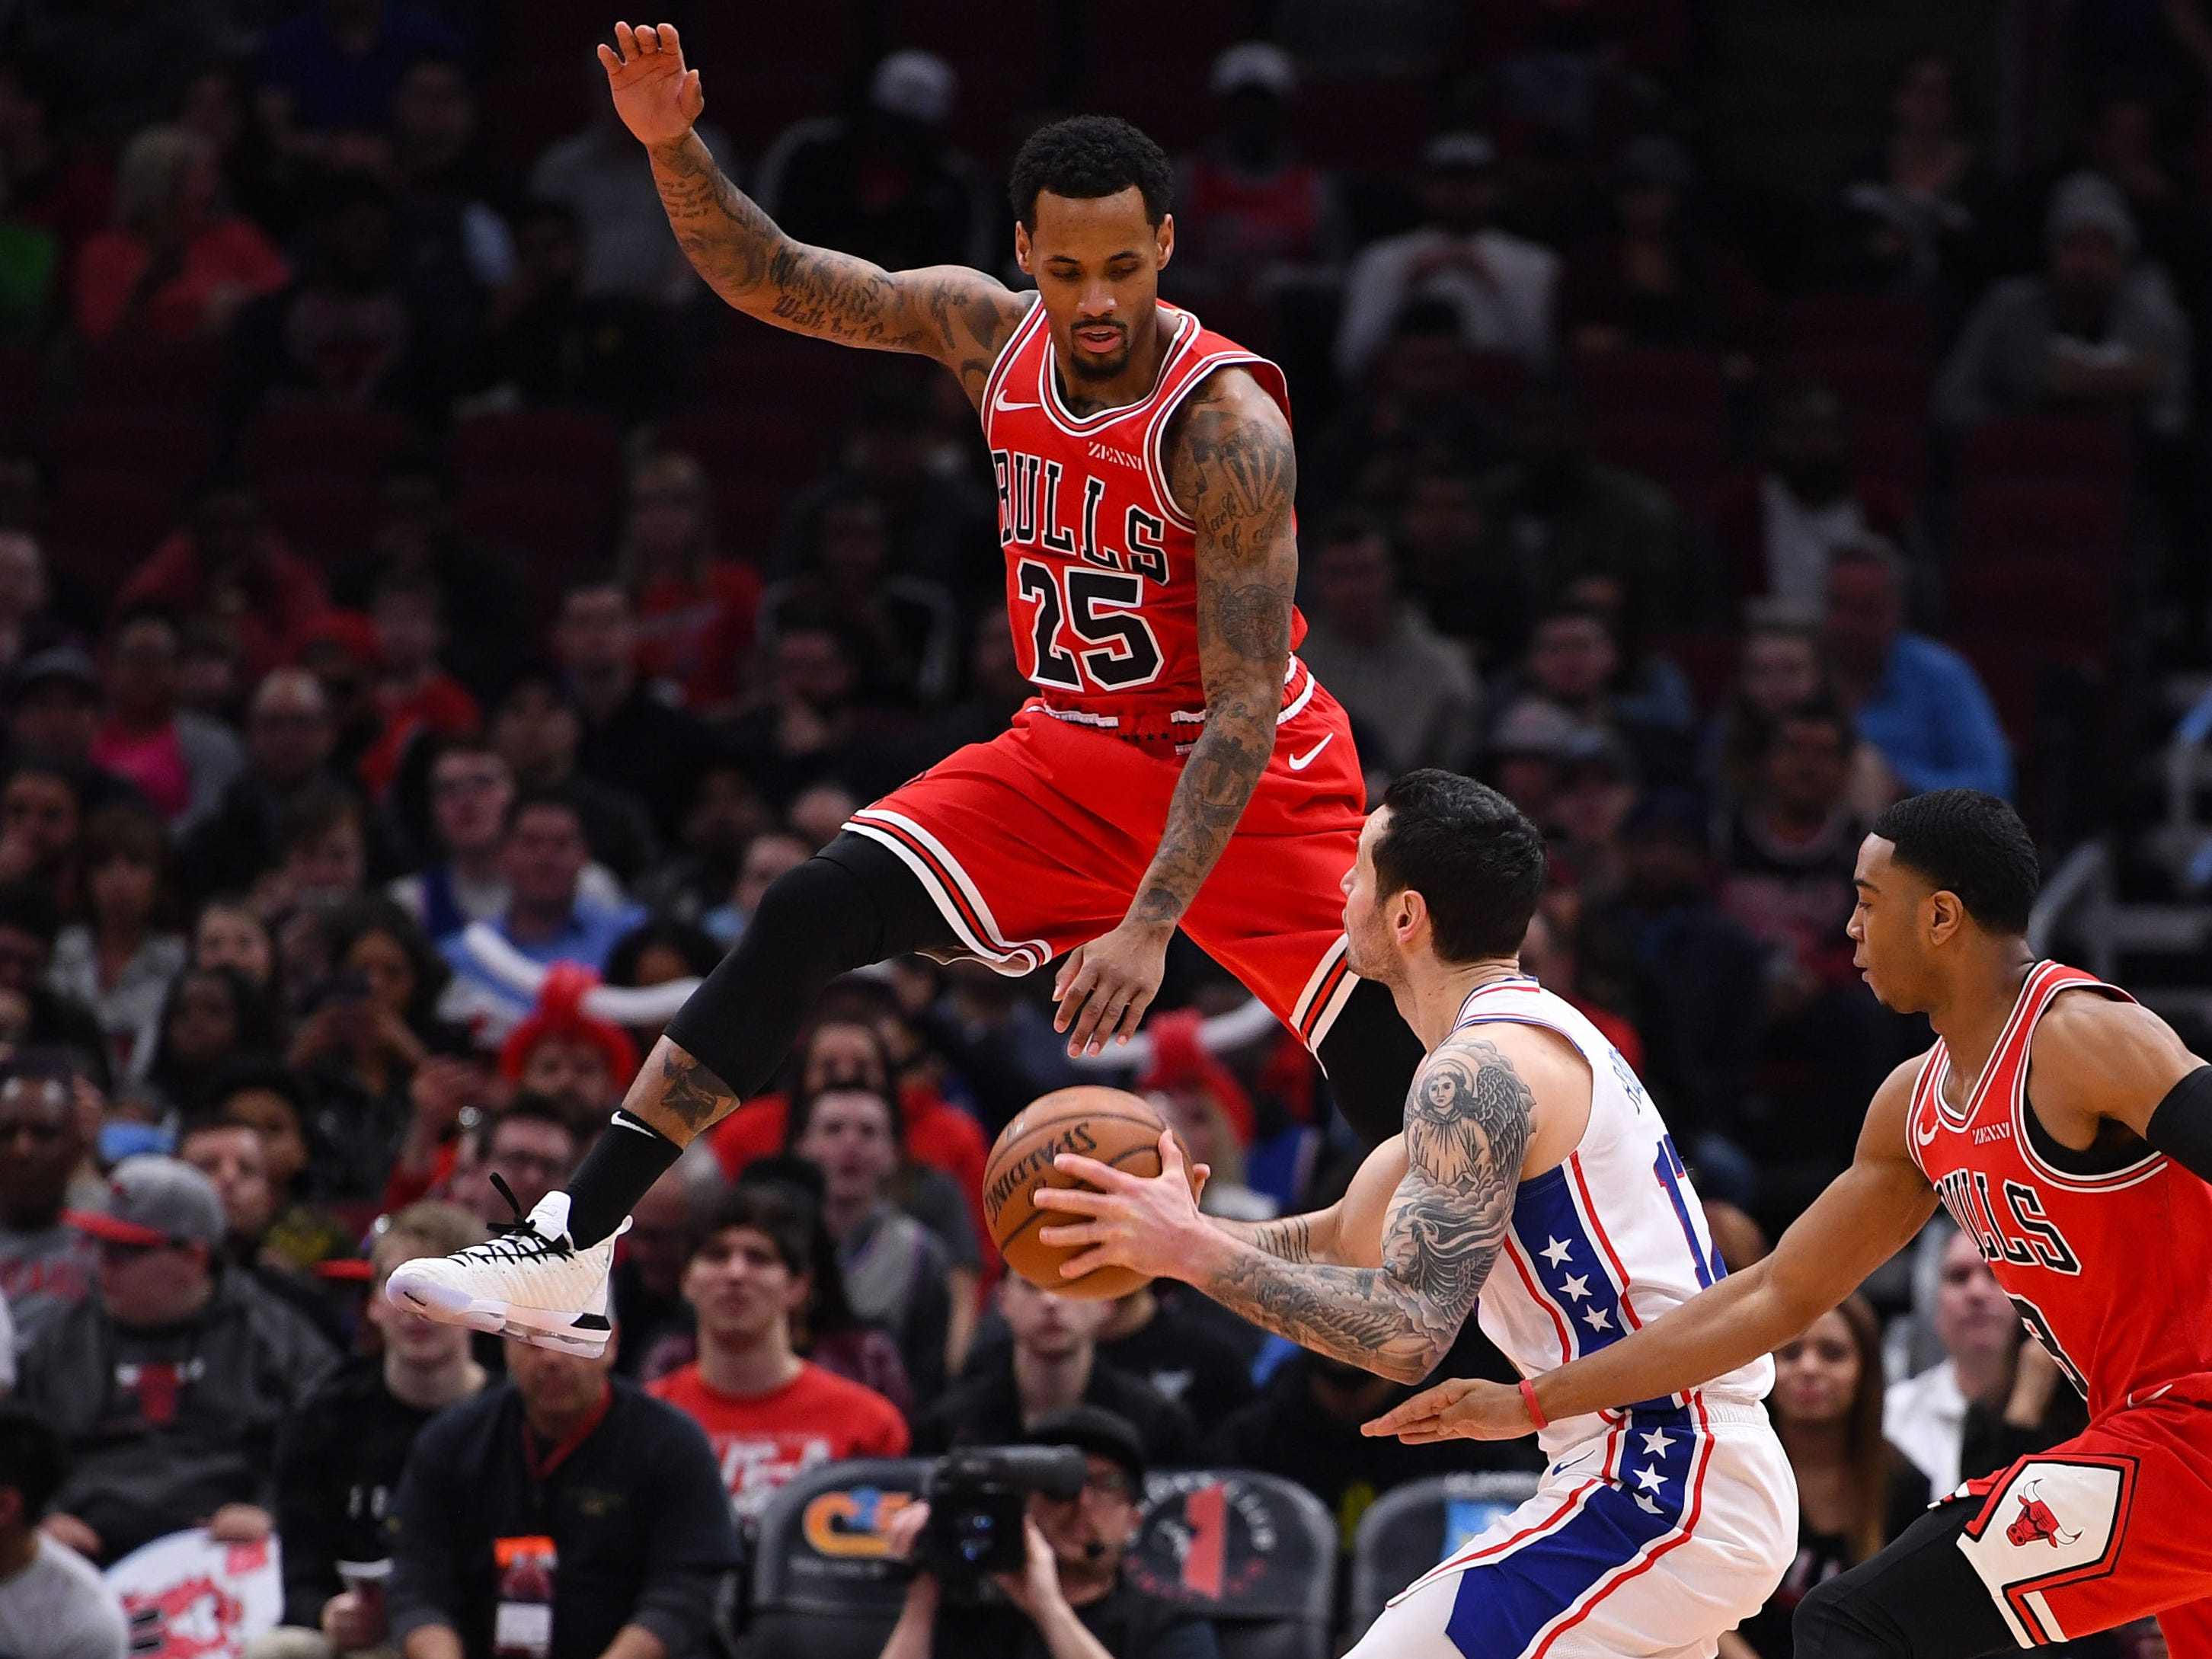 April 6: Sixers guard J.J. Redick (17) gets Bulls defender Walt Lemon Jr. (25) up in the air with a ball fake during the first half in Chicago.